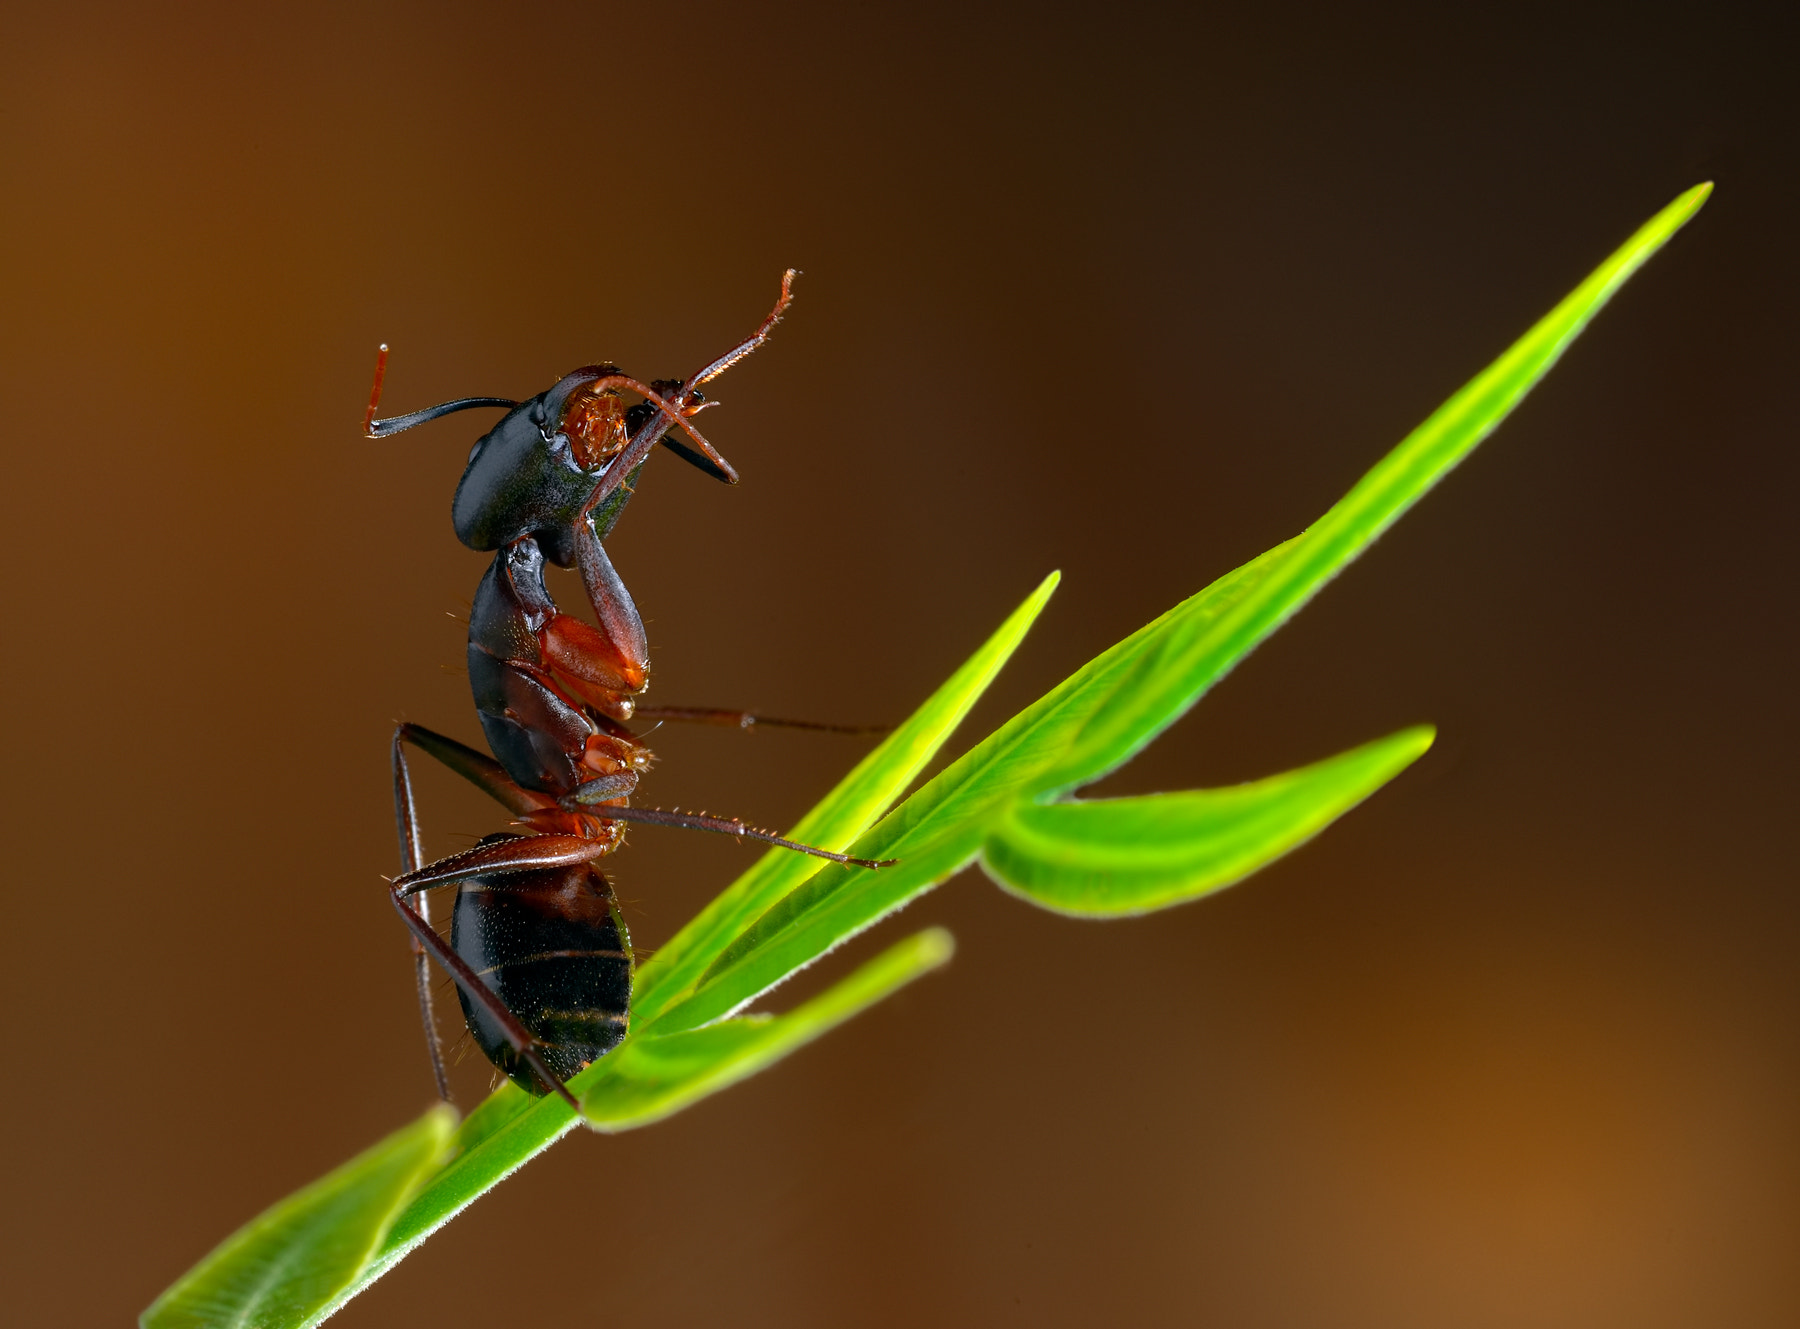 Photograph Ant on leaf by Charles Charalambous on 500px